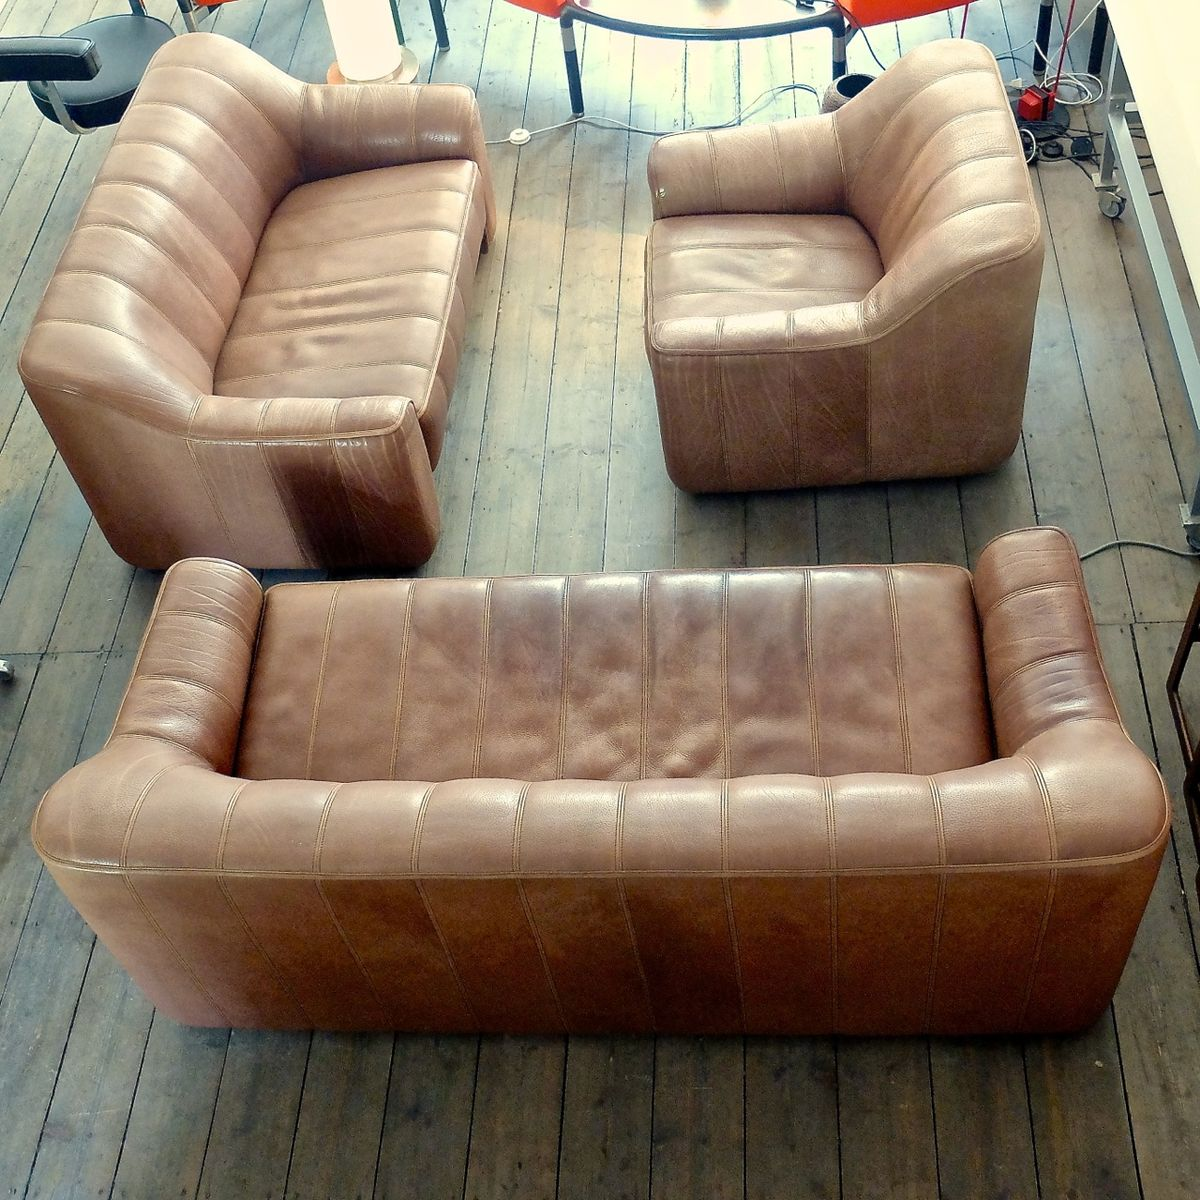 Vintage Swiss Ds 44 2 Seater Sofa From De Sede For Sale At